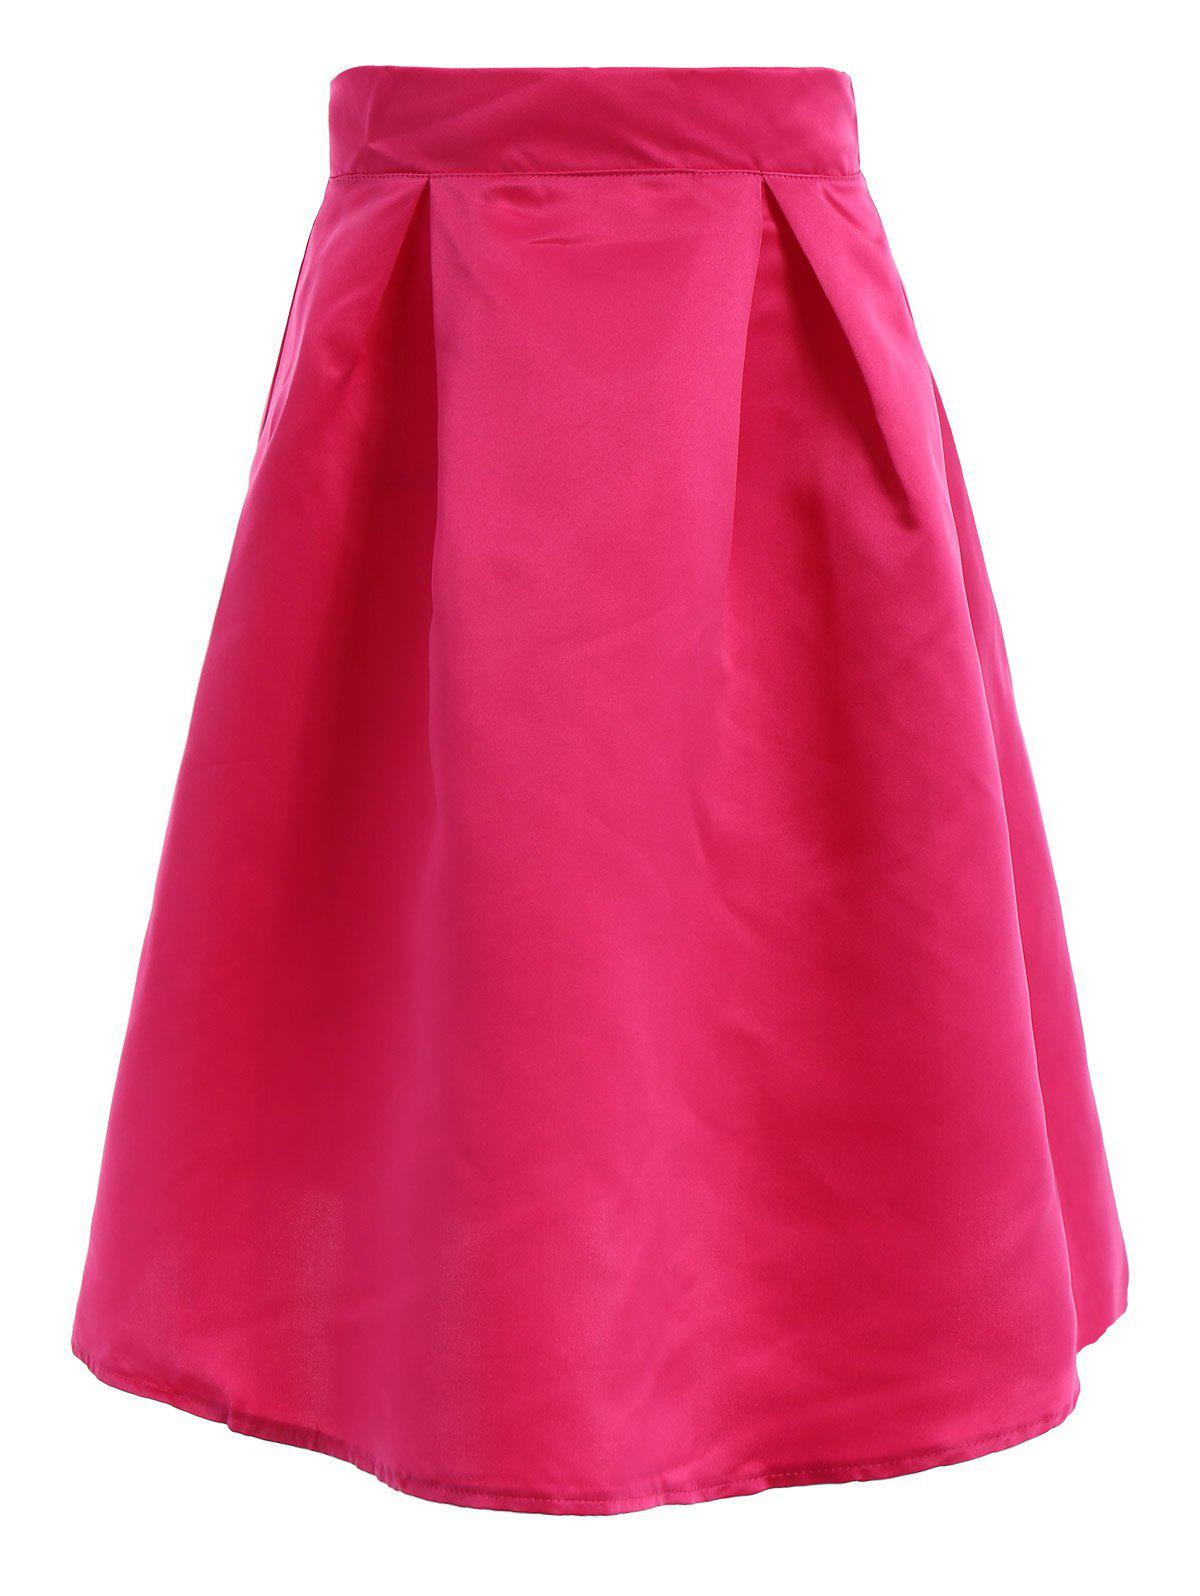 Endearing High Waist Candy Color Pleated Maxi Skirt For Women